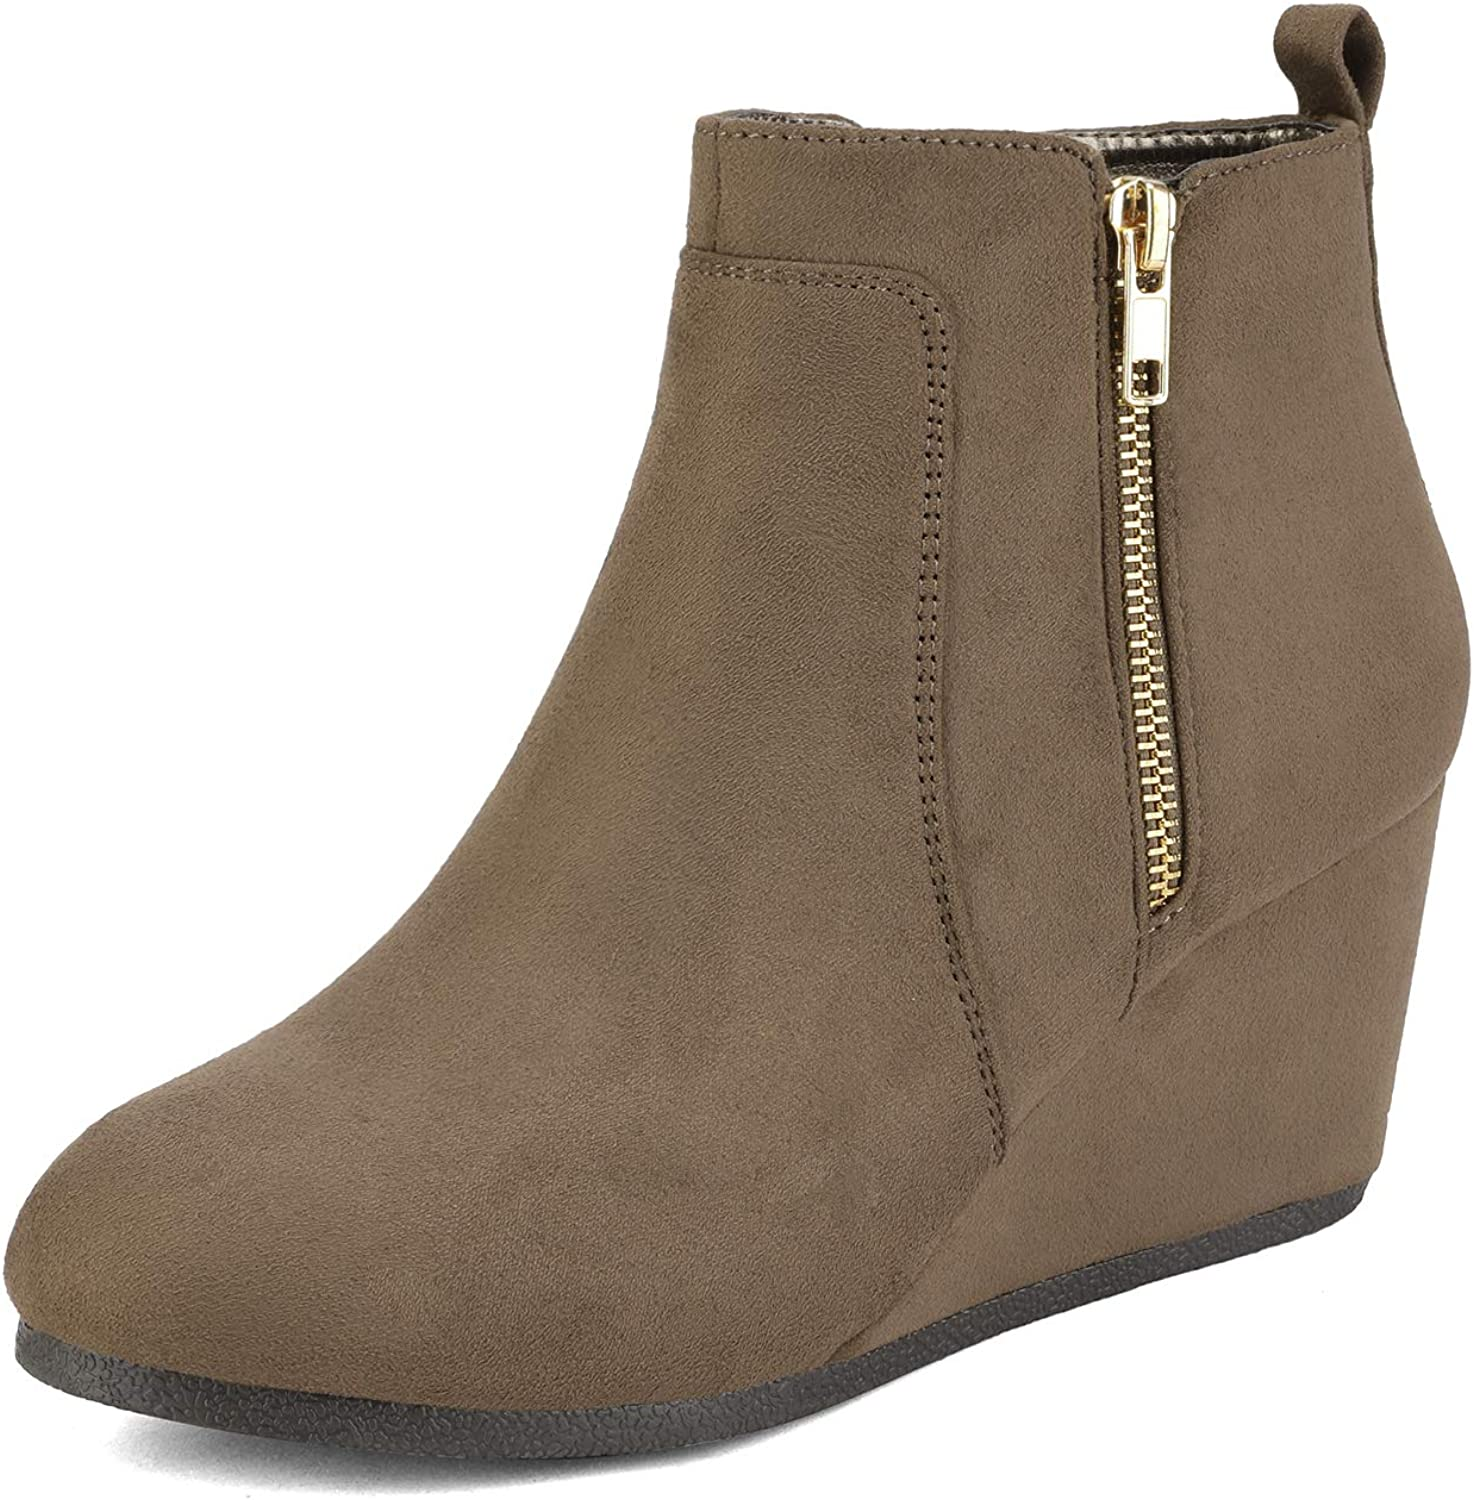 DREAM PAIRS Women's Suede Low Ankle Max 74% OFF Wedges Challenge the lowest price of Japan ☆ Boots